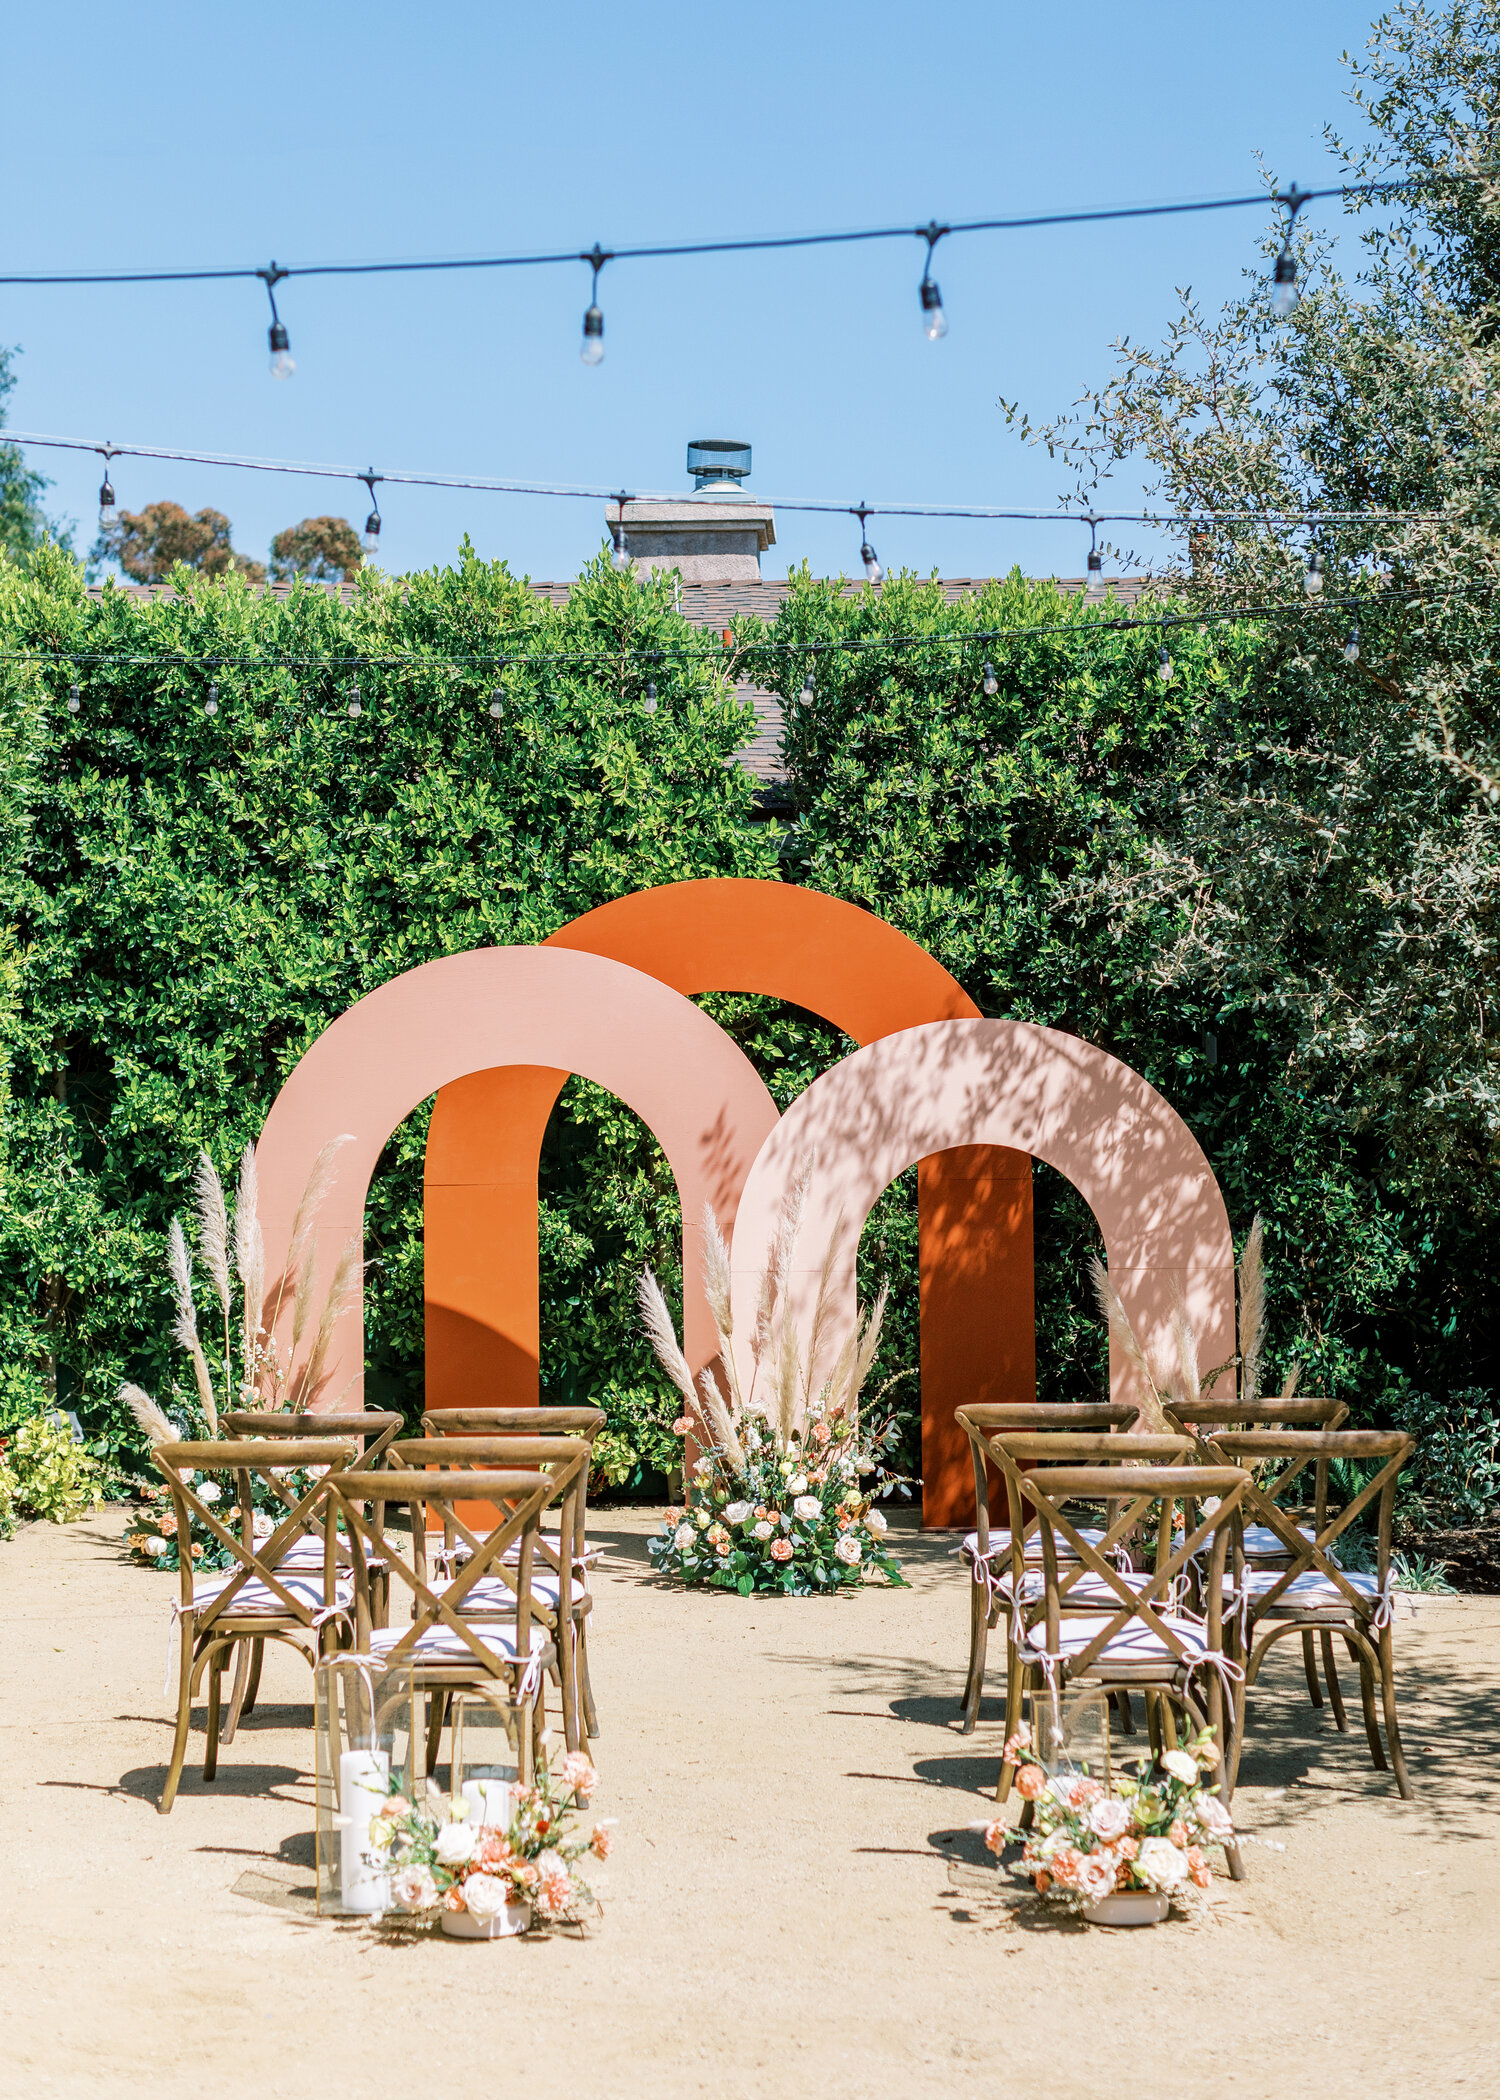 www.santabarbarawedding.com   Events by Fran   Ever After Petite Venue   Kendall Ann Photo   Tangled Lotus   Amigo Party Rentals   Harpist VeeRonna   The Ceremony Set Up with Rainbow Arches